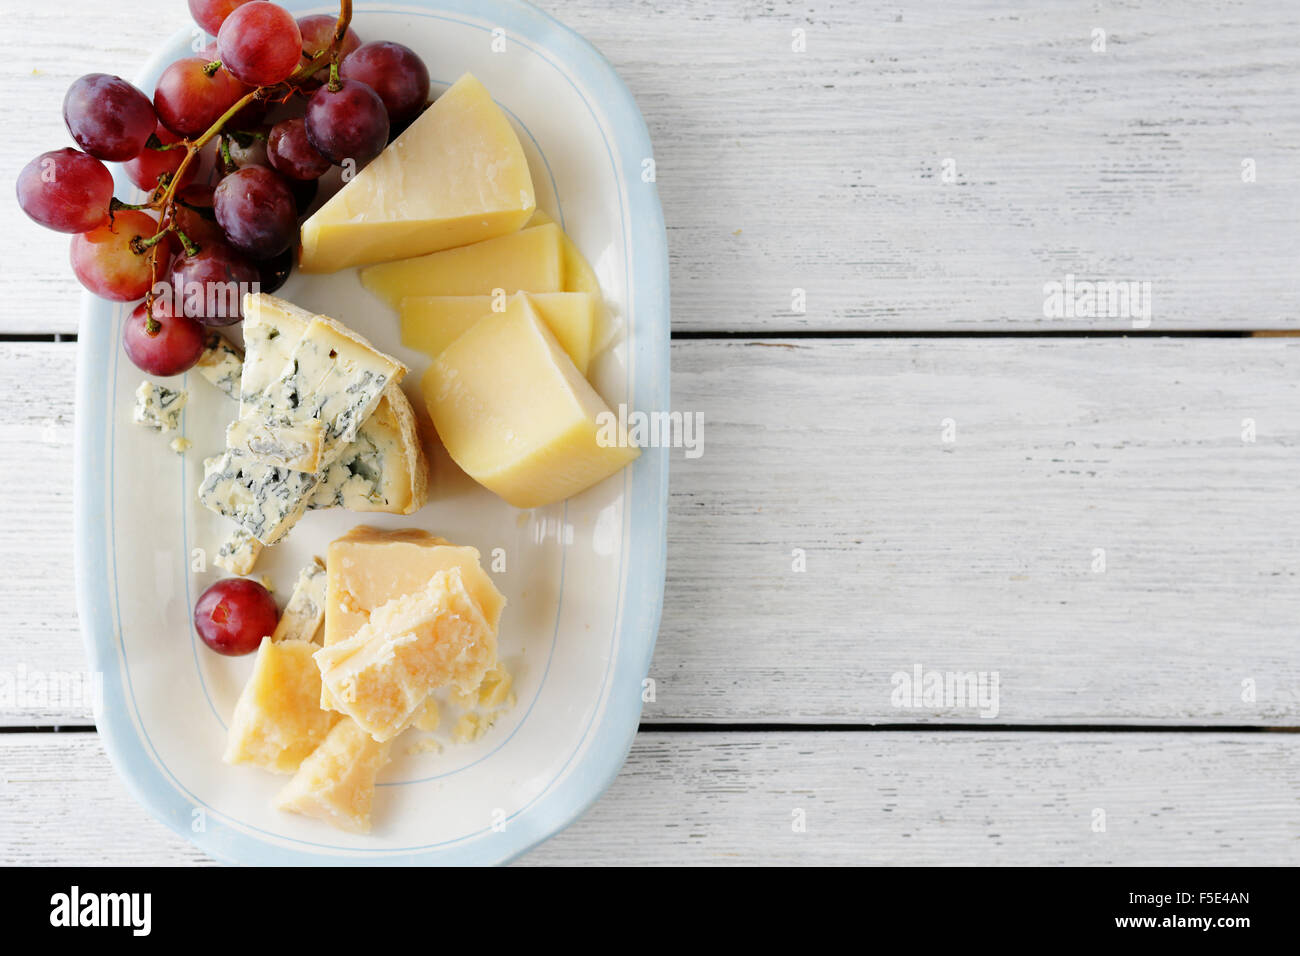 cheeses and red grapes on plate, planks food background - Stock Image